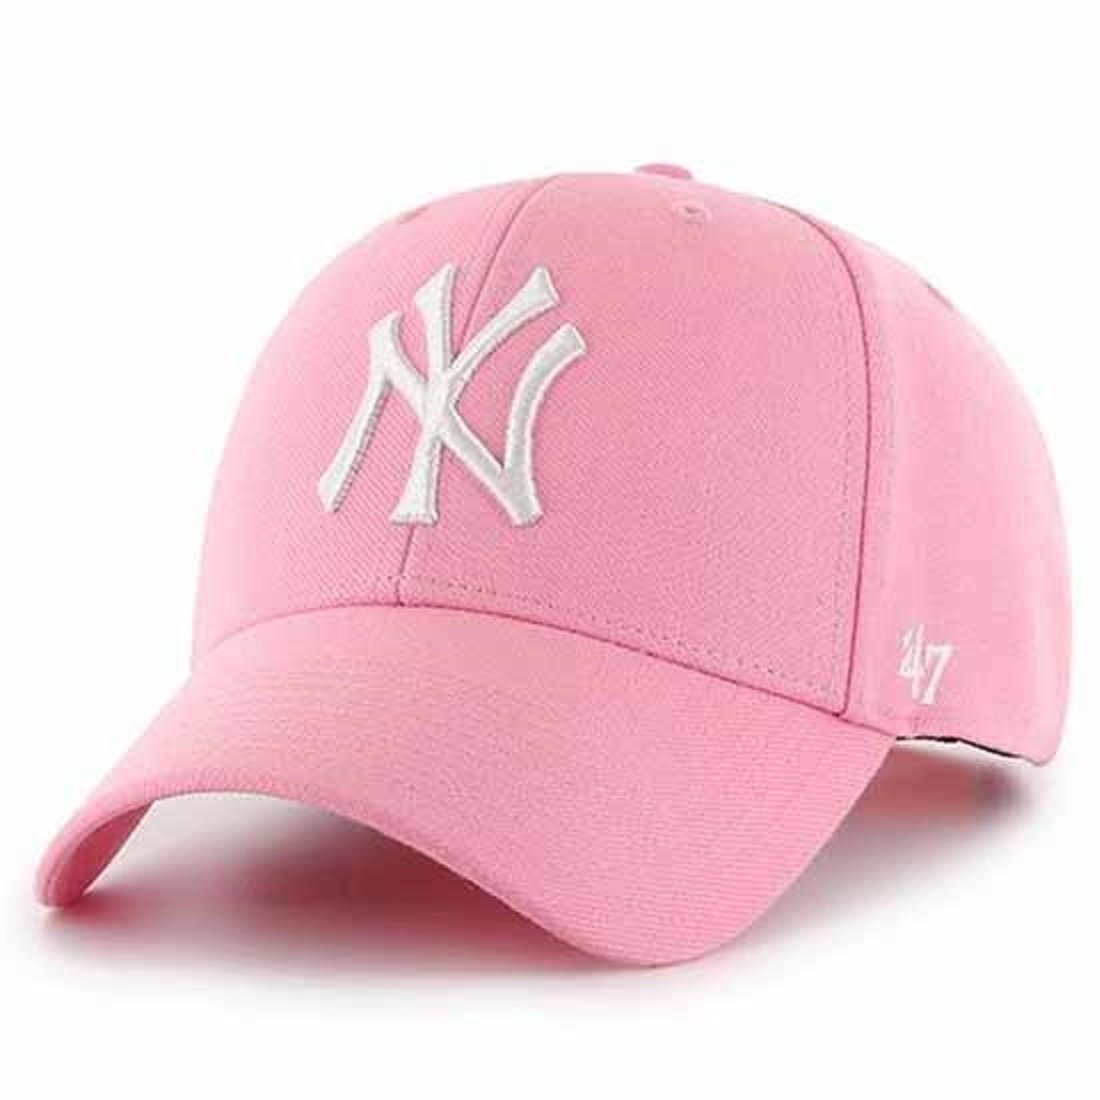 '47 New York Yankees Pink Newborn (Size 0-9 Months) Baseball Cap Hat